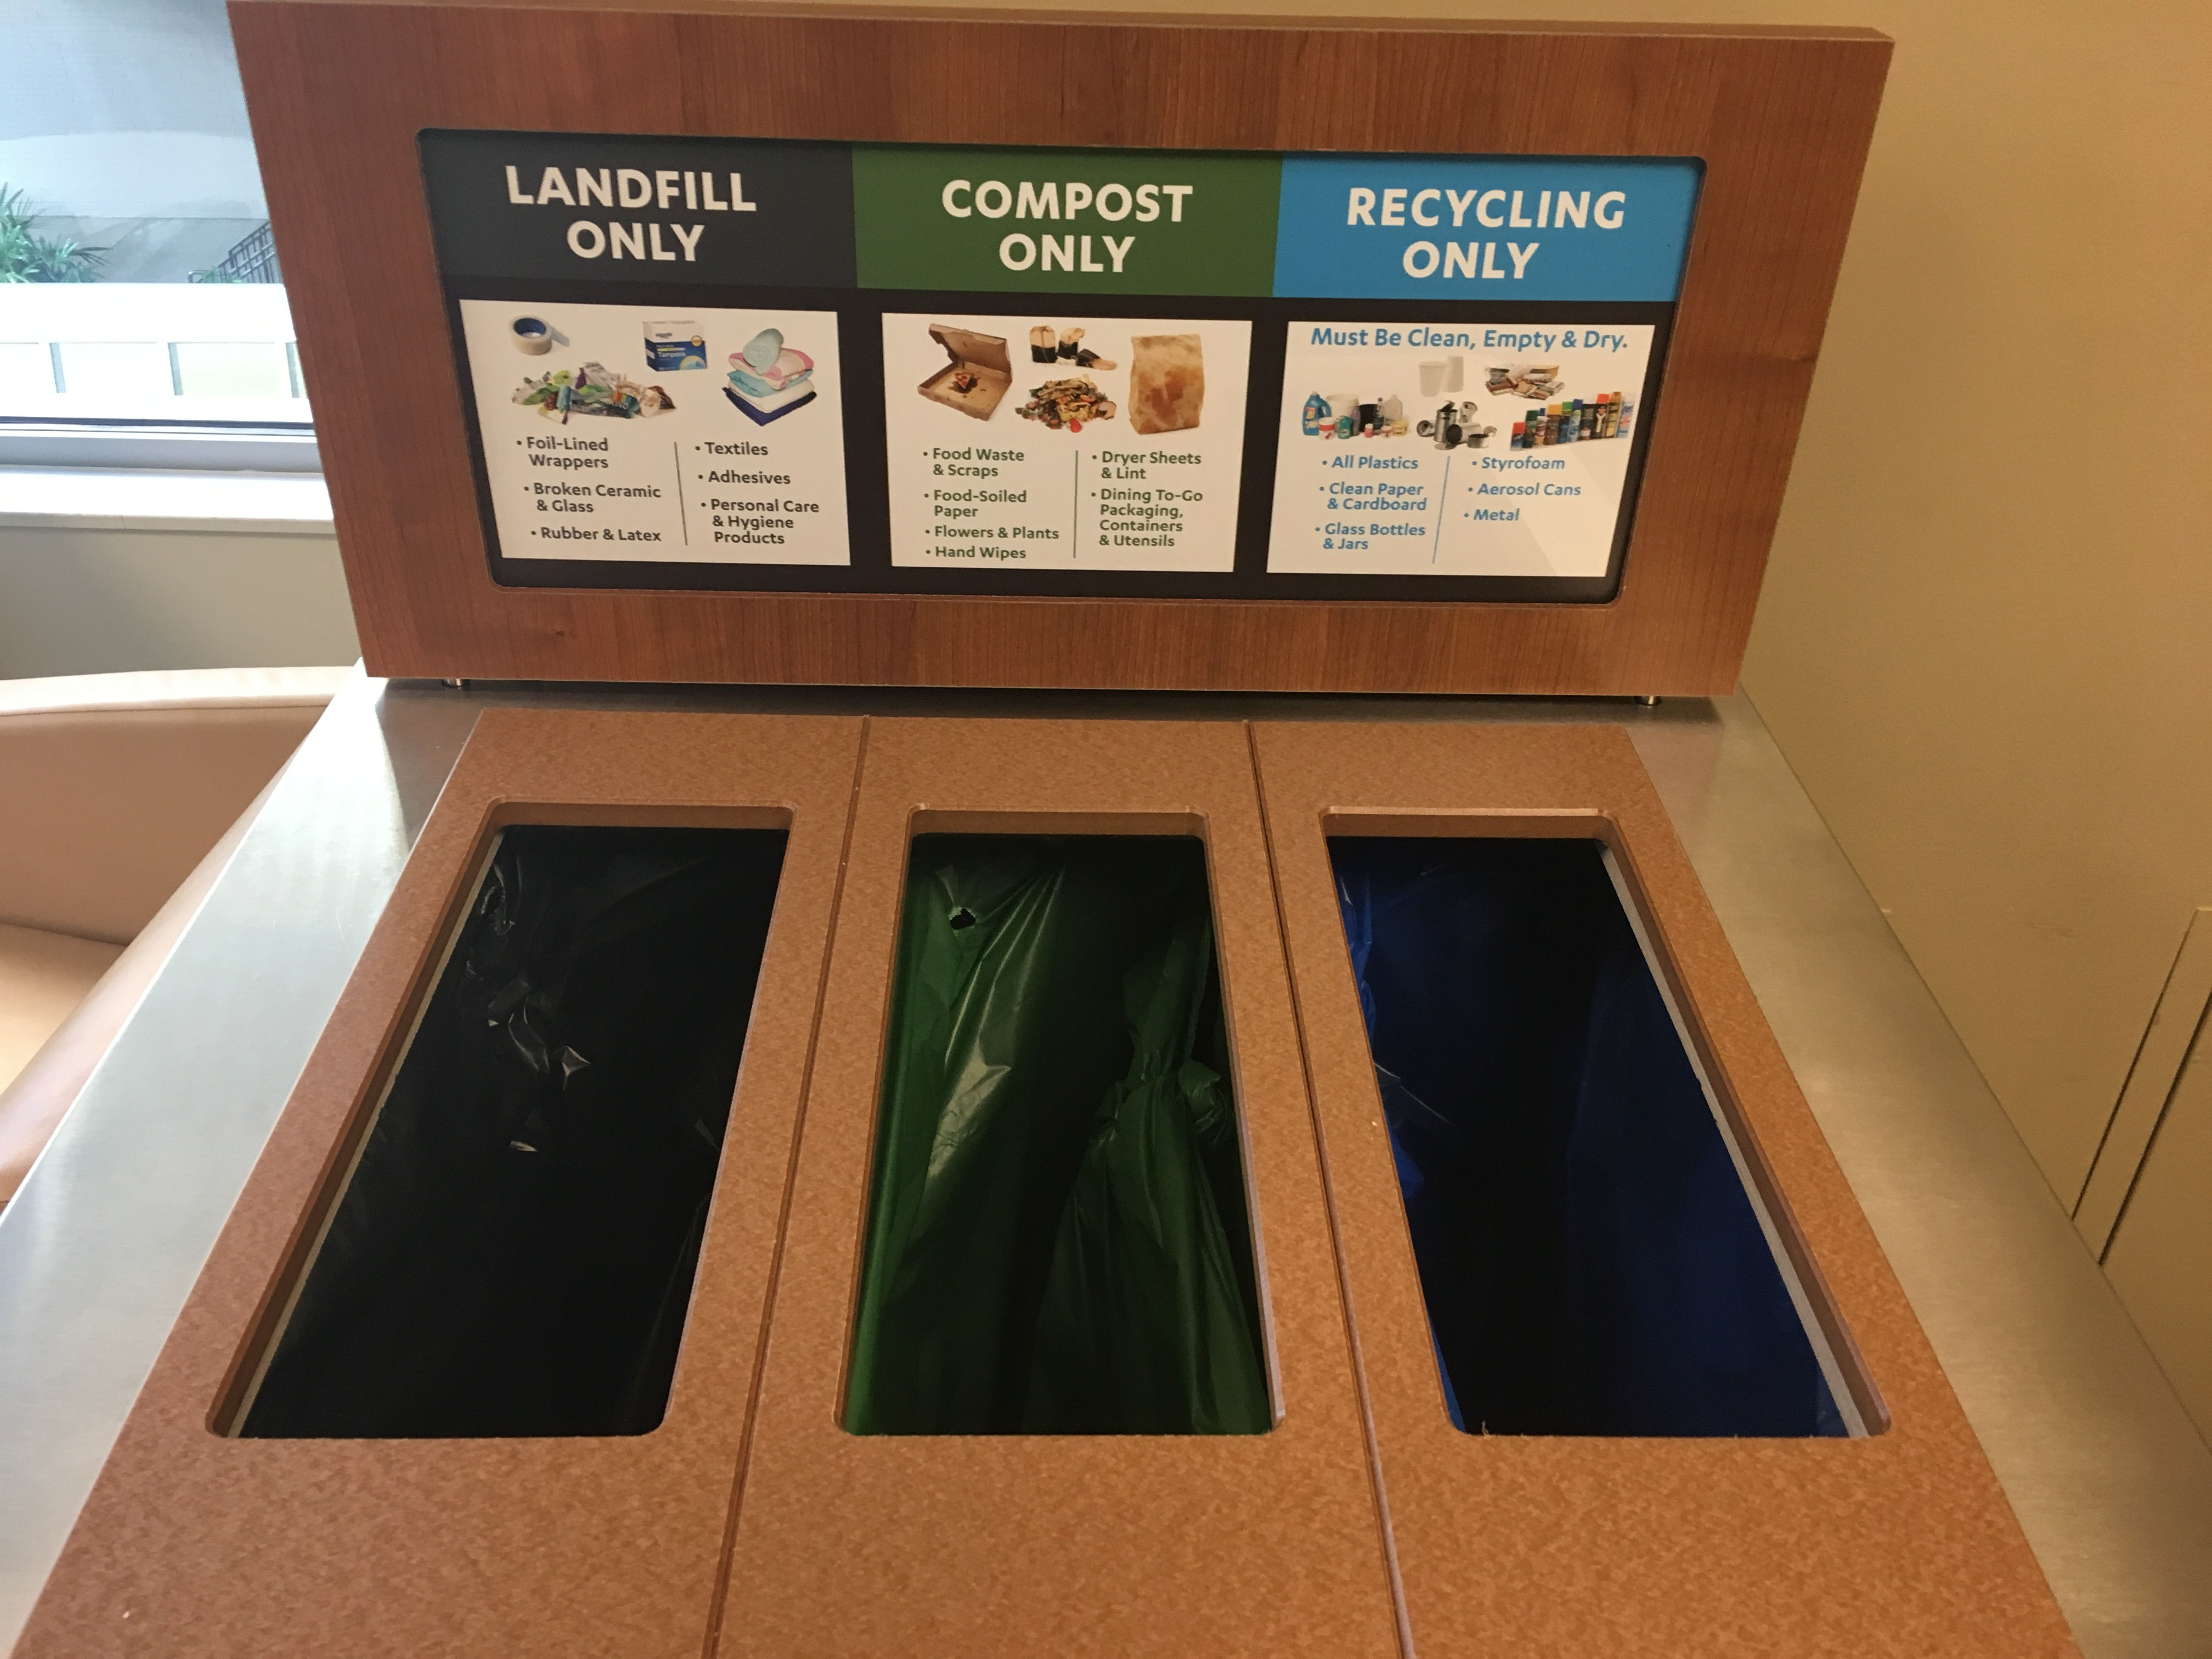 Composting and Recycling | UCLA SustainabilityUCLA